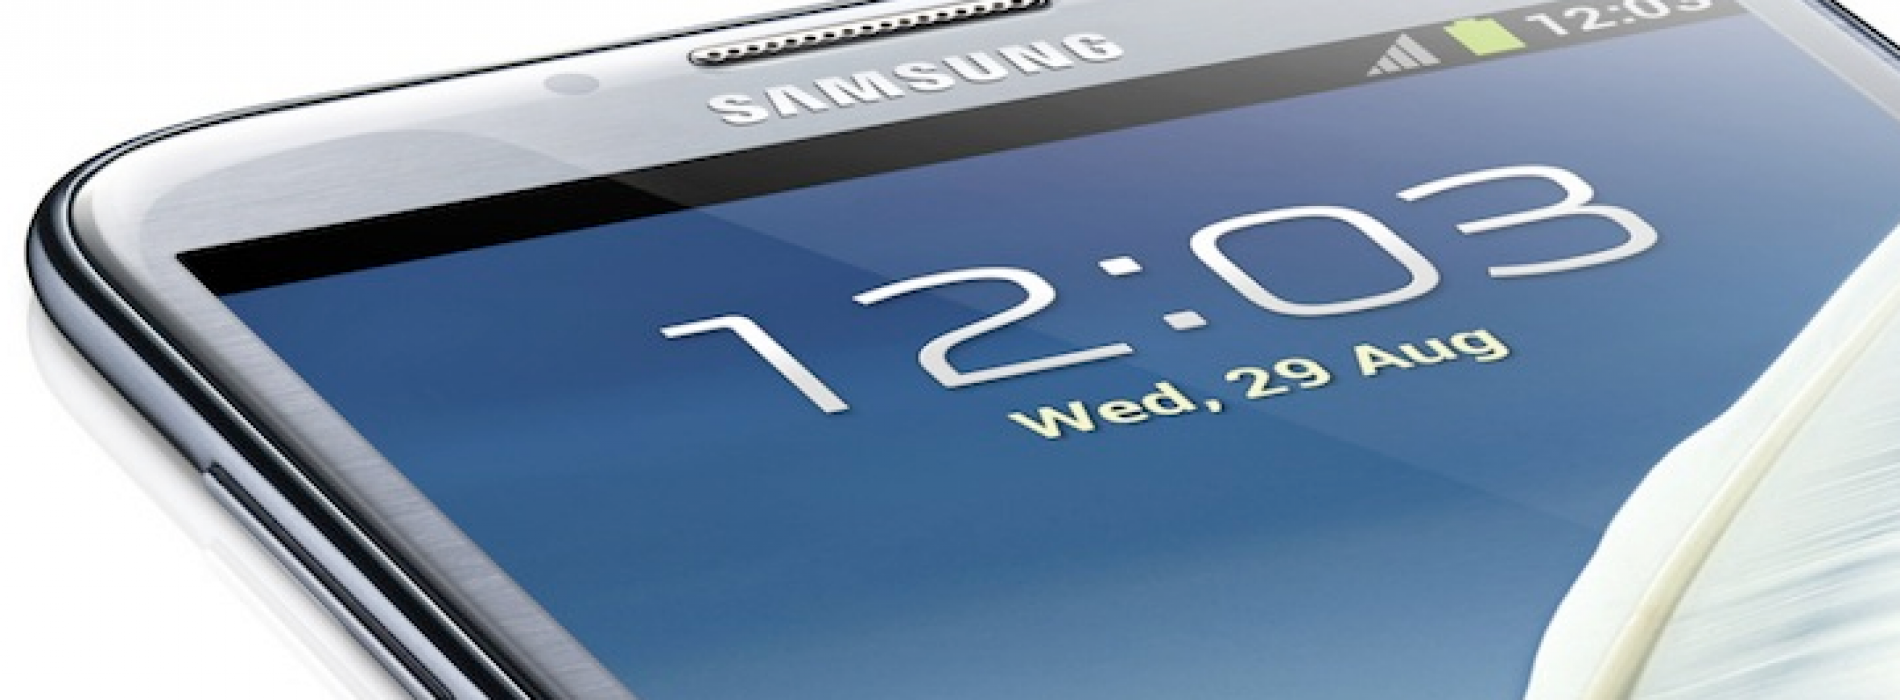 Galaxy Note II reported to arrive at AT&T on October 21